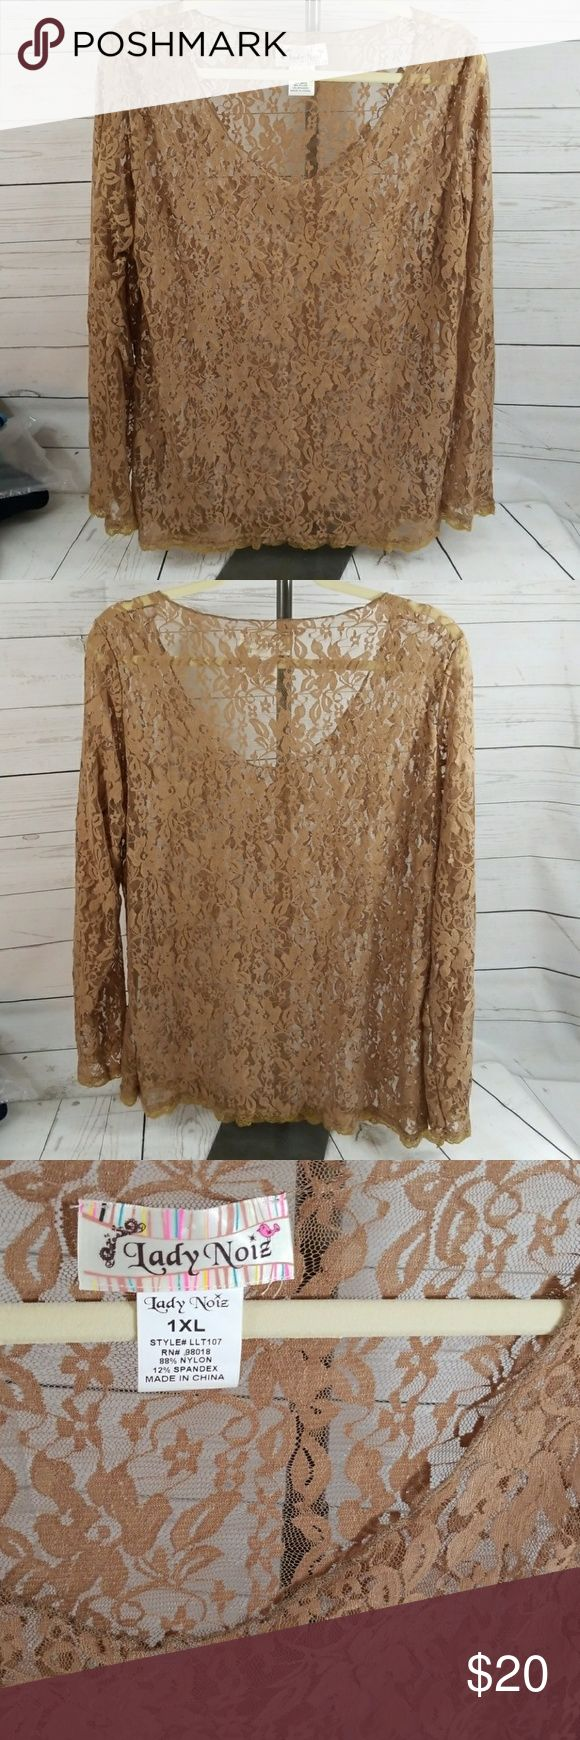 Lady Noiz lace top Sheer cocoa brown lace long sleeve top. Flirty and feminine. Perfect over a black cami. NWOT. This is a 1X Long. Lady Noiz Tops Tees - Long Sleeve